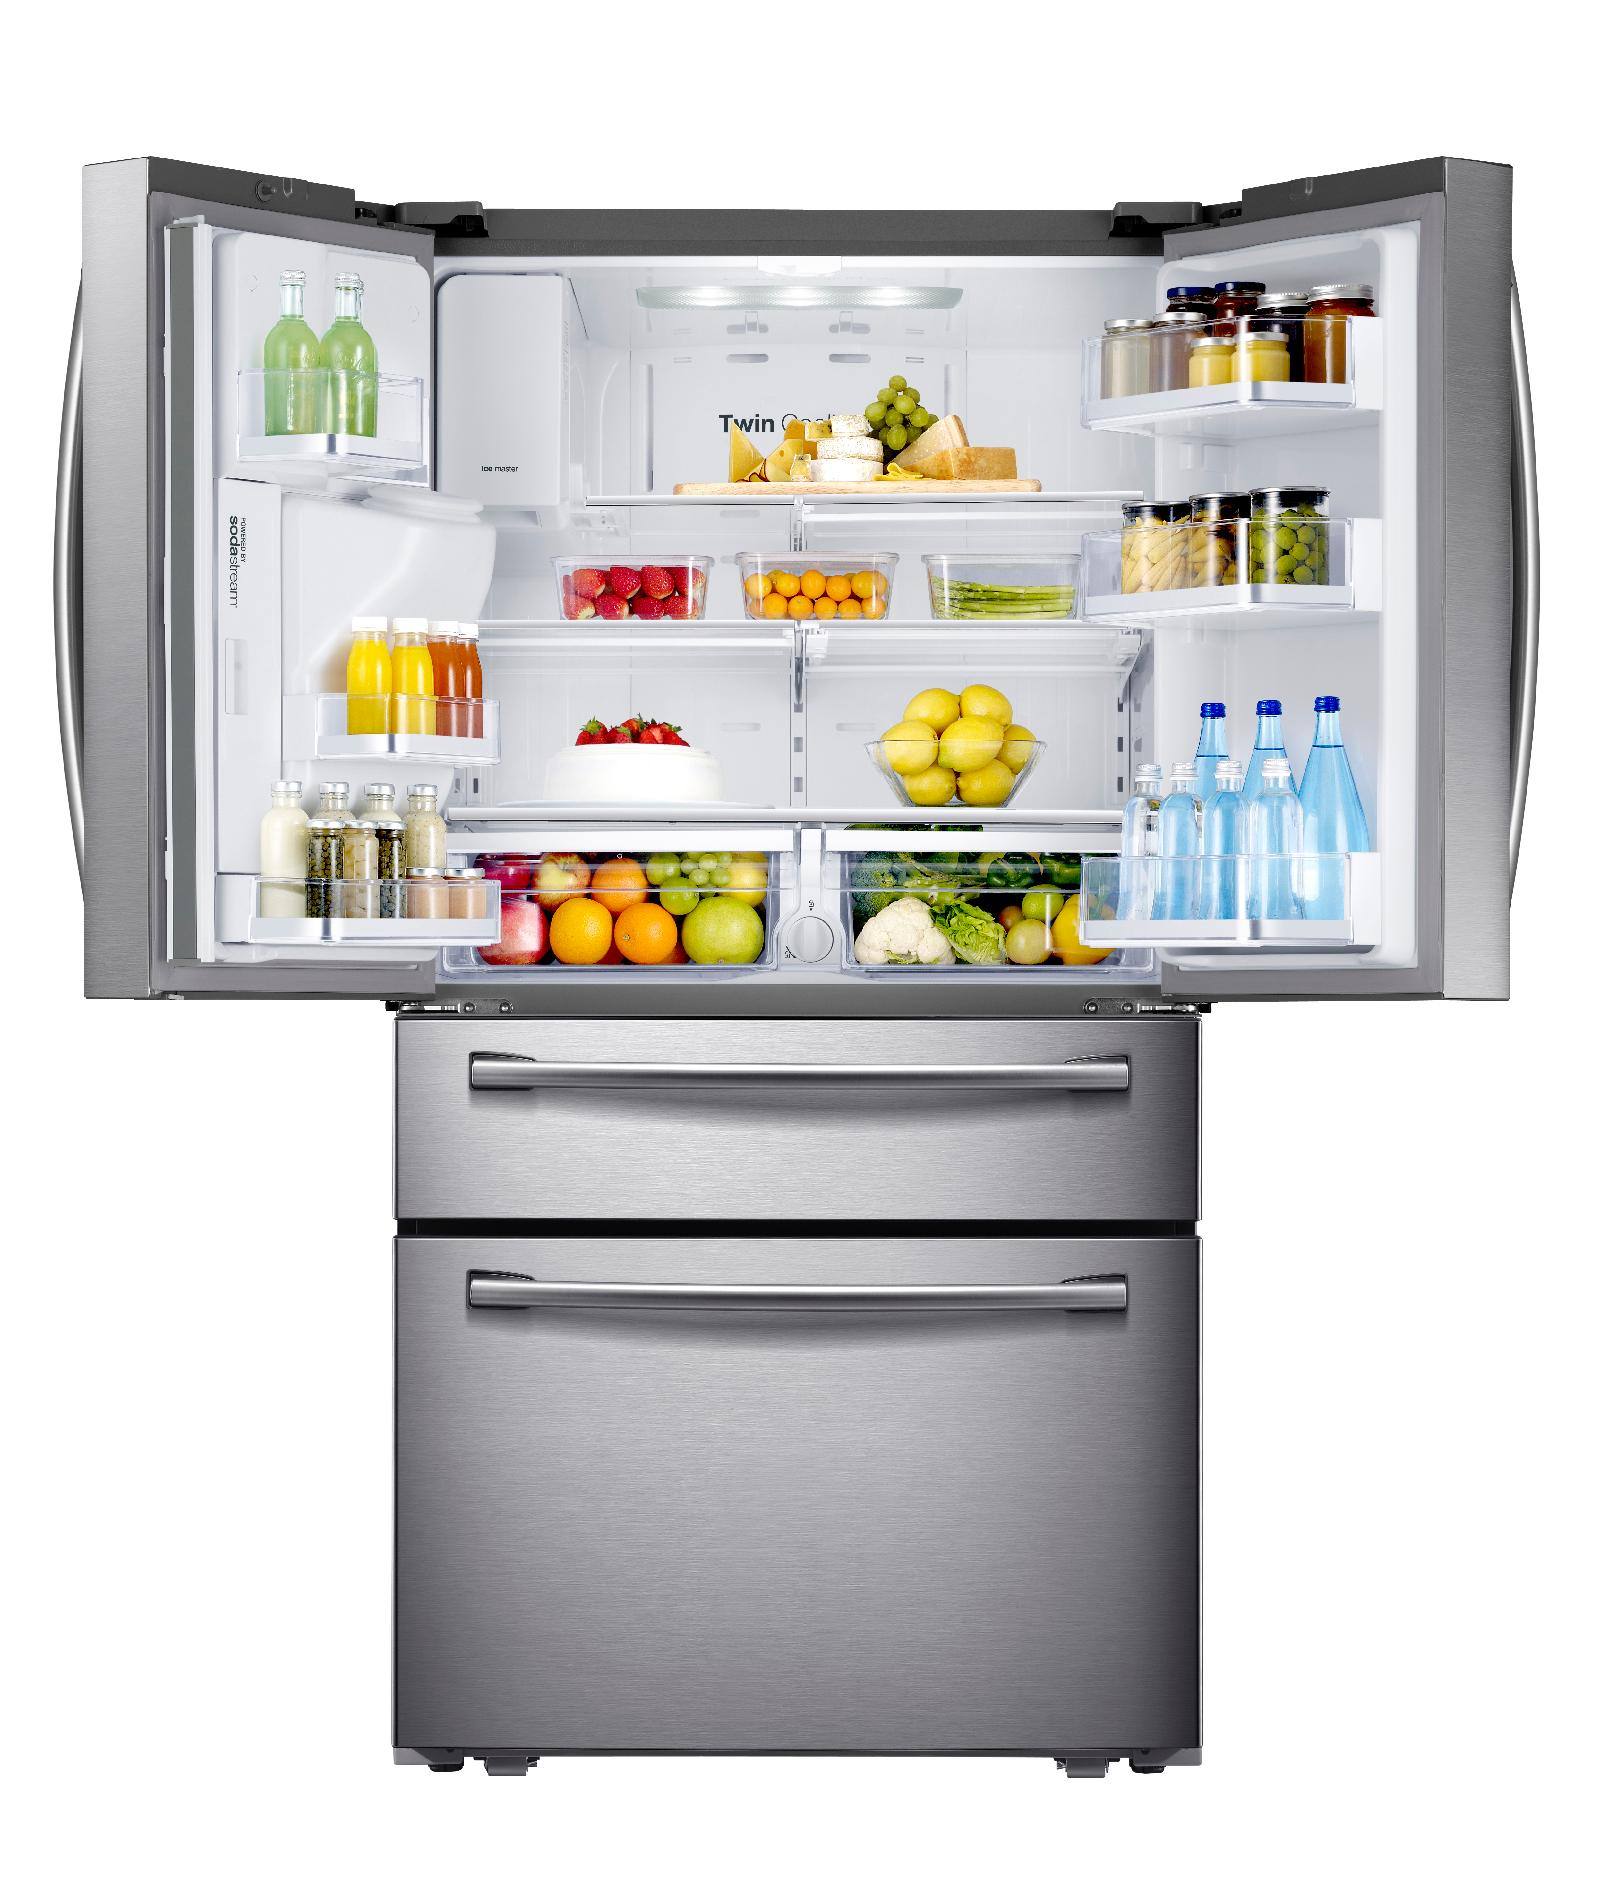 Samsung RF31FMESBSR 30.5 cu. ft. 4-Door Refrigerator w/ Automatic Sparkling Water Dispenser - Stainless Steel